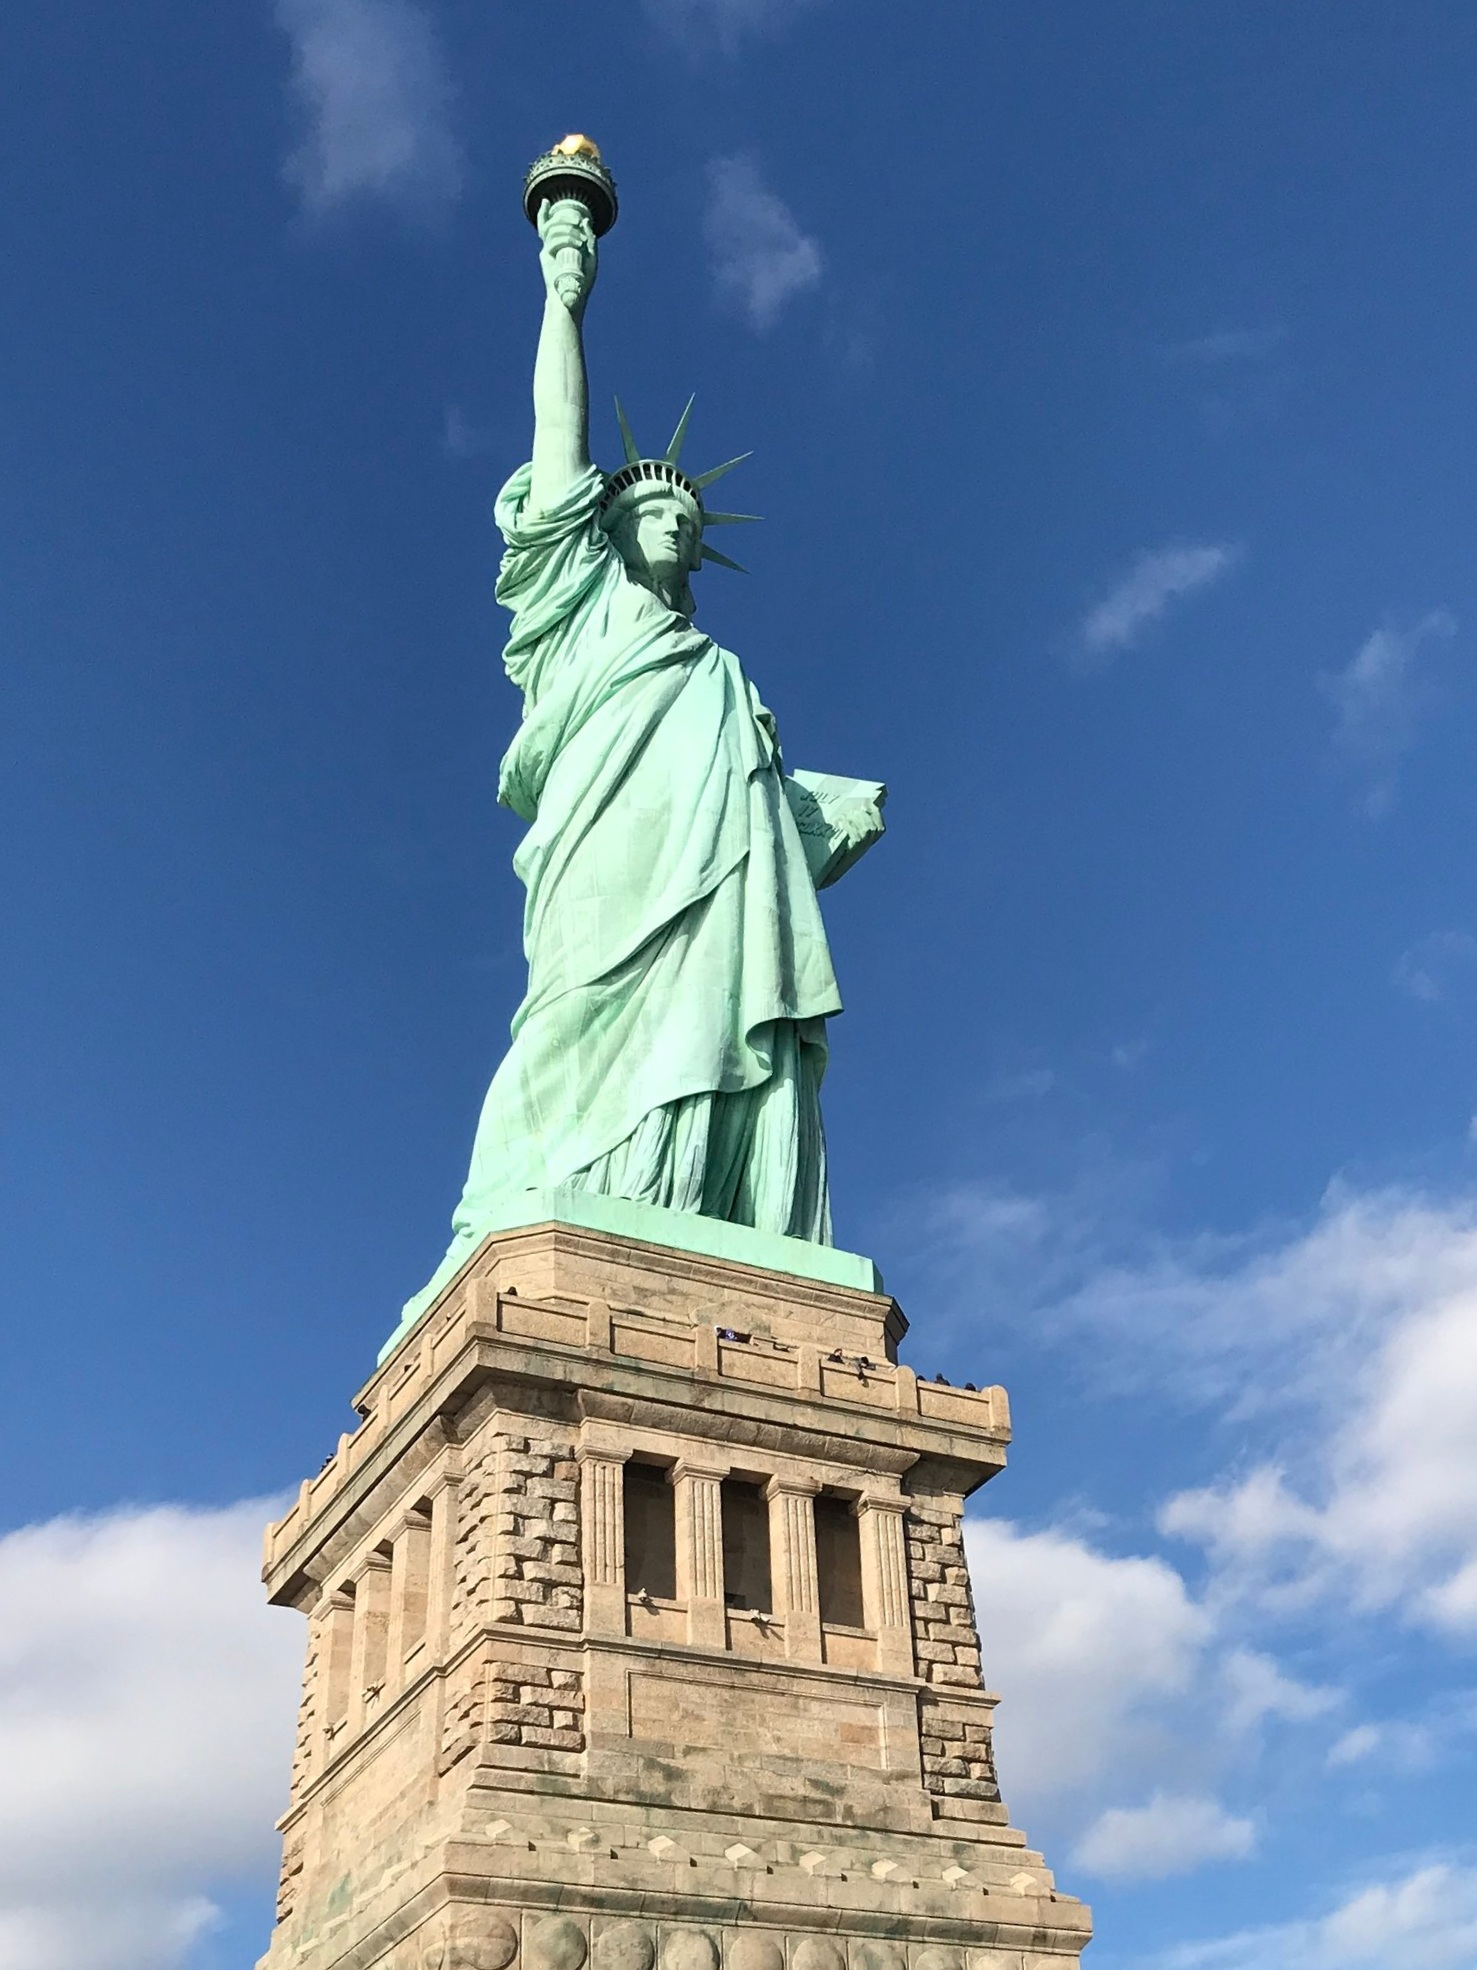 Statue of Liberty National Monument, New York City, NY